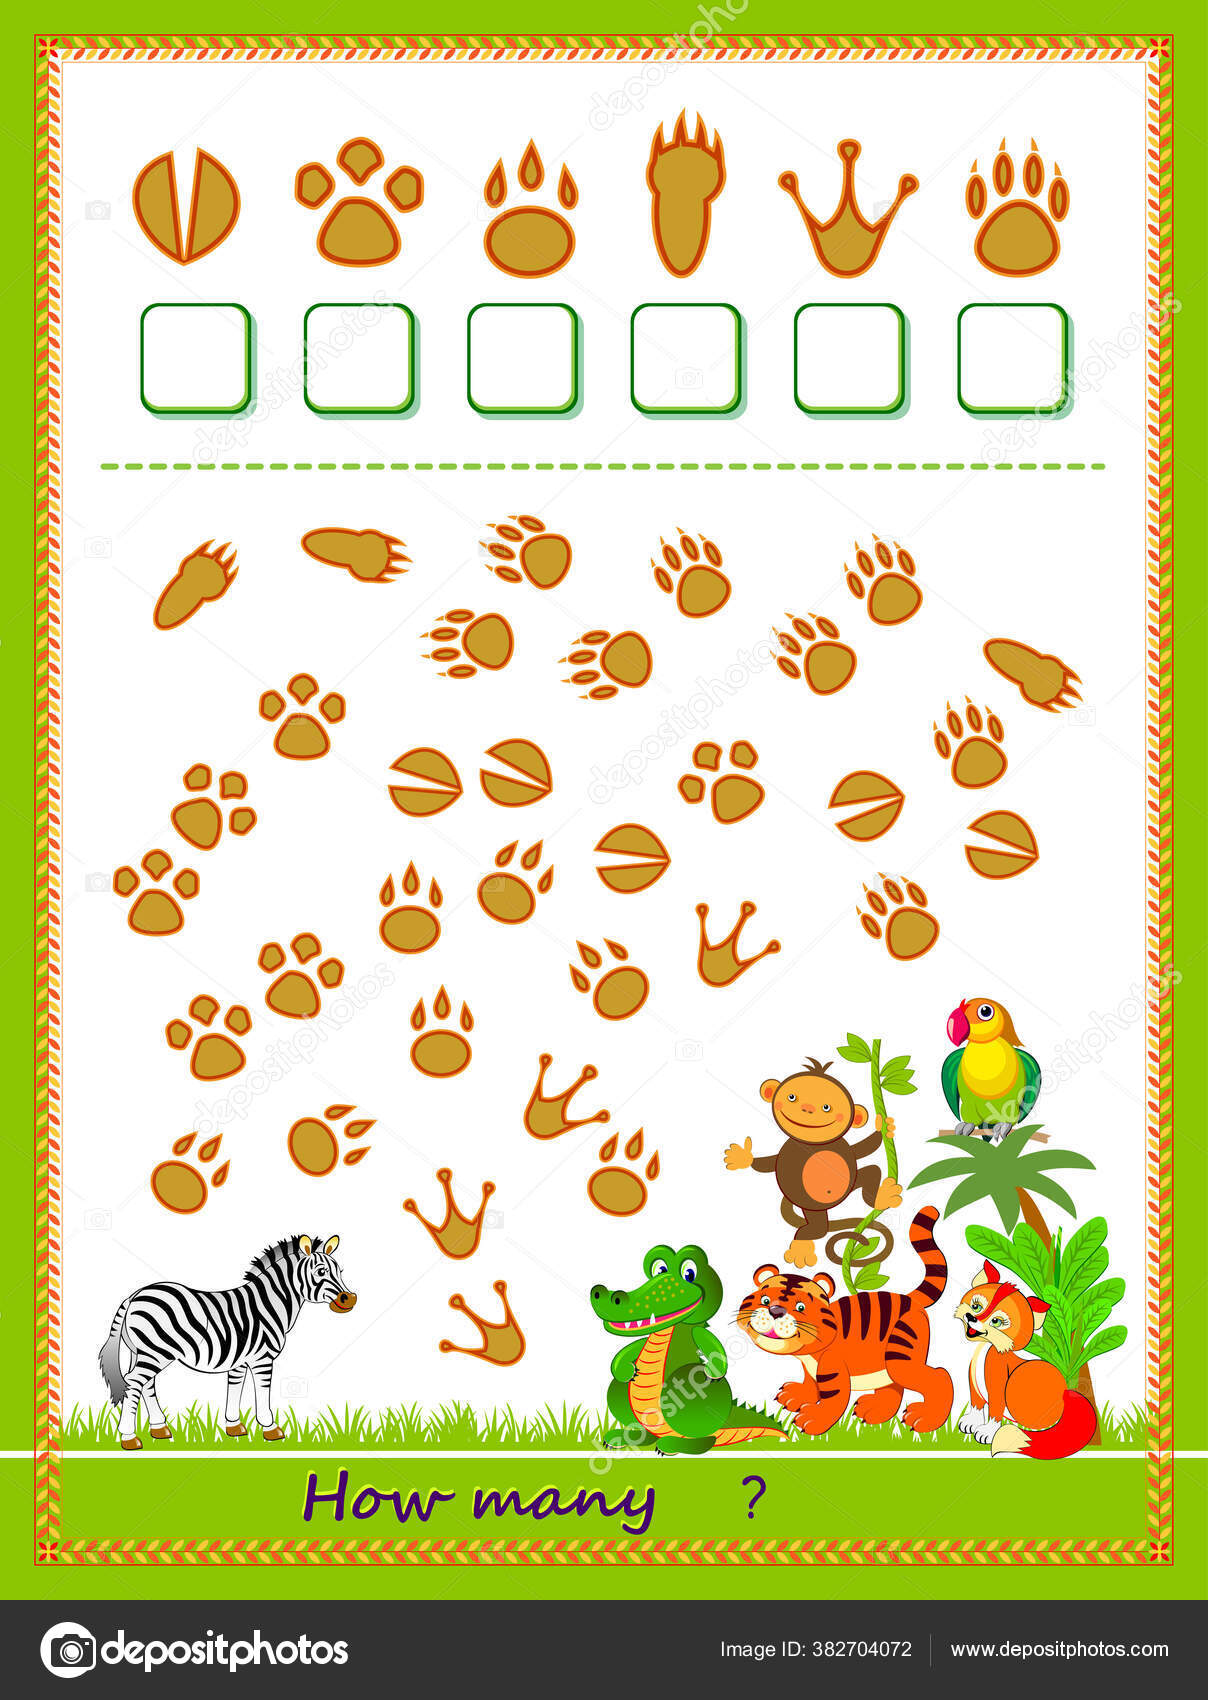 Math Education Children Count Quantity Tracks Left Animals Write Numbers Vector Image By C Nataljacernecka Vector Stock 382704072 [ 1700 x 1208 Pixel ]